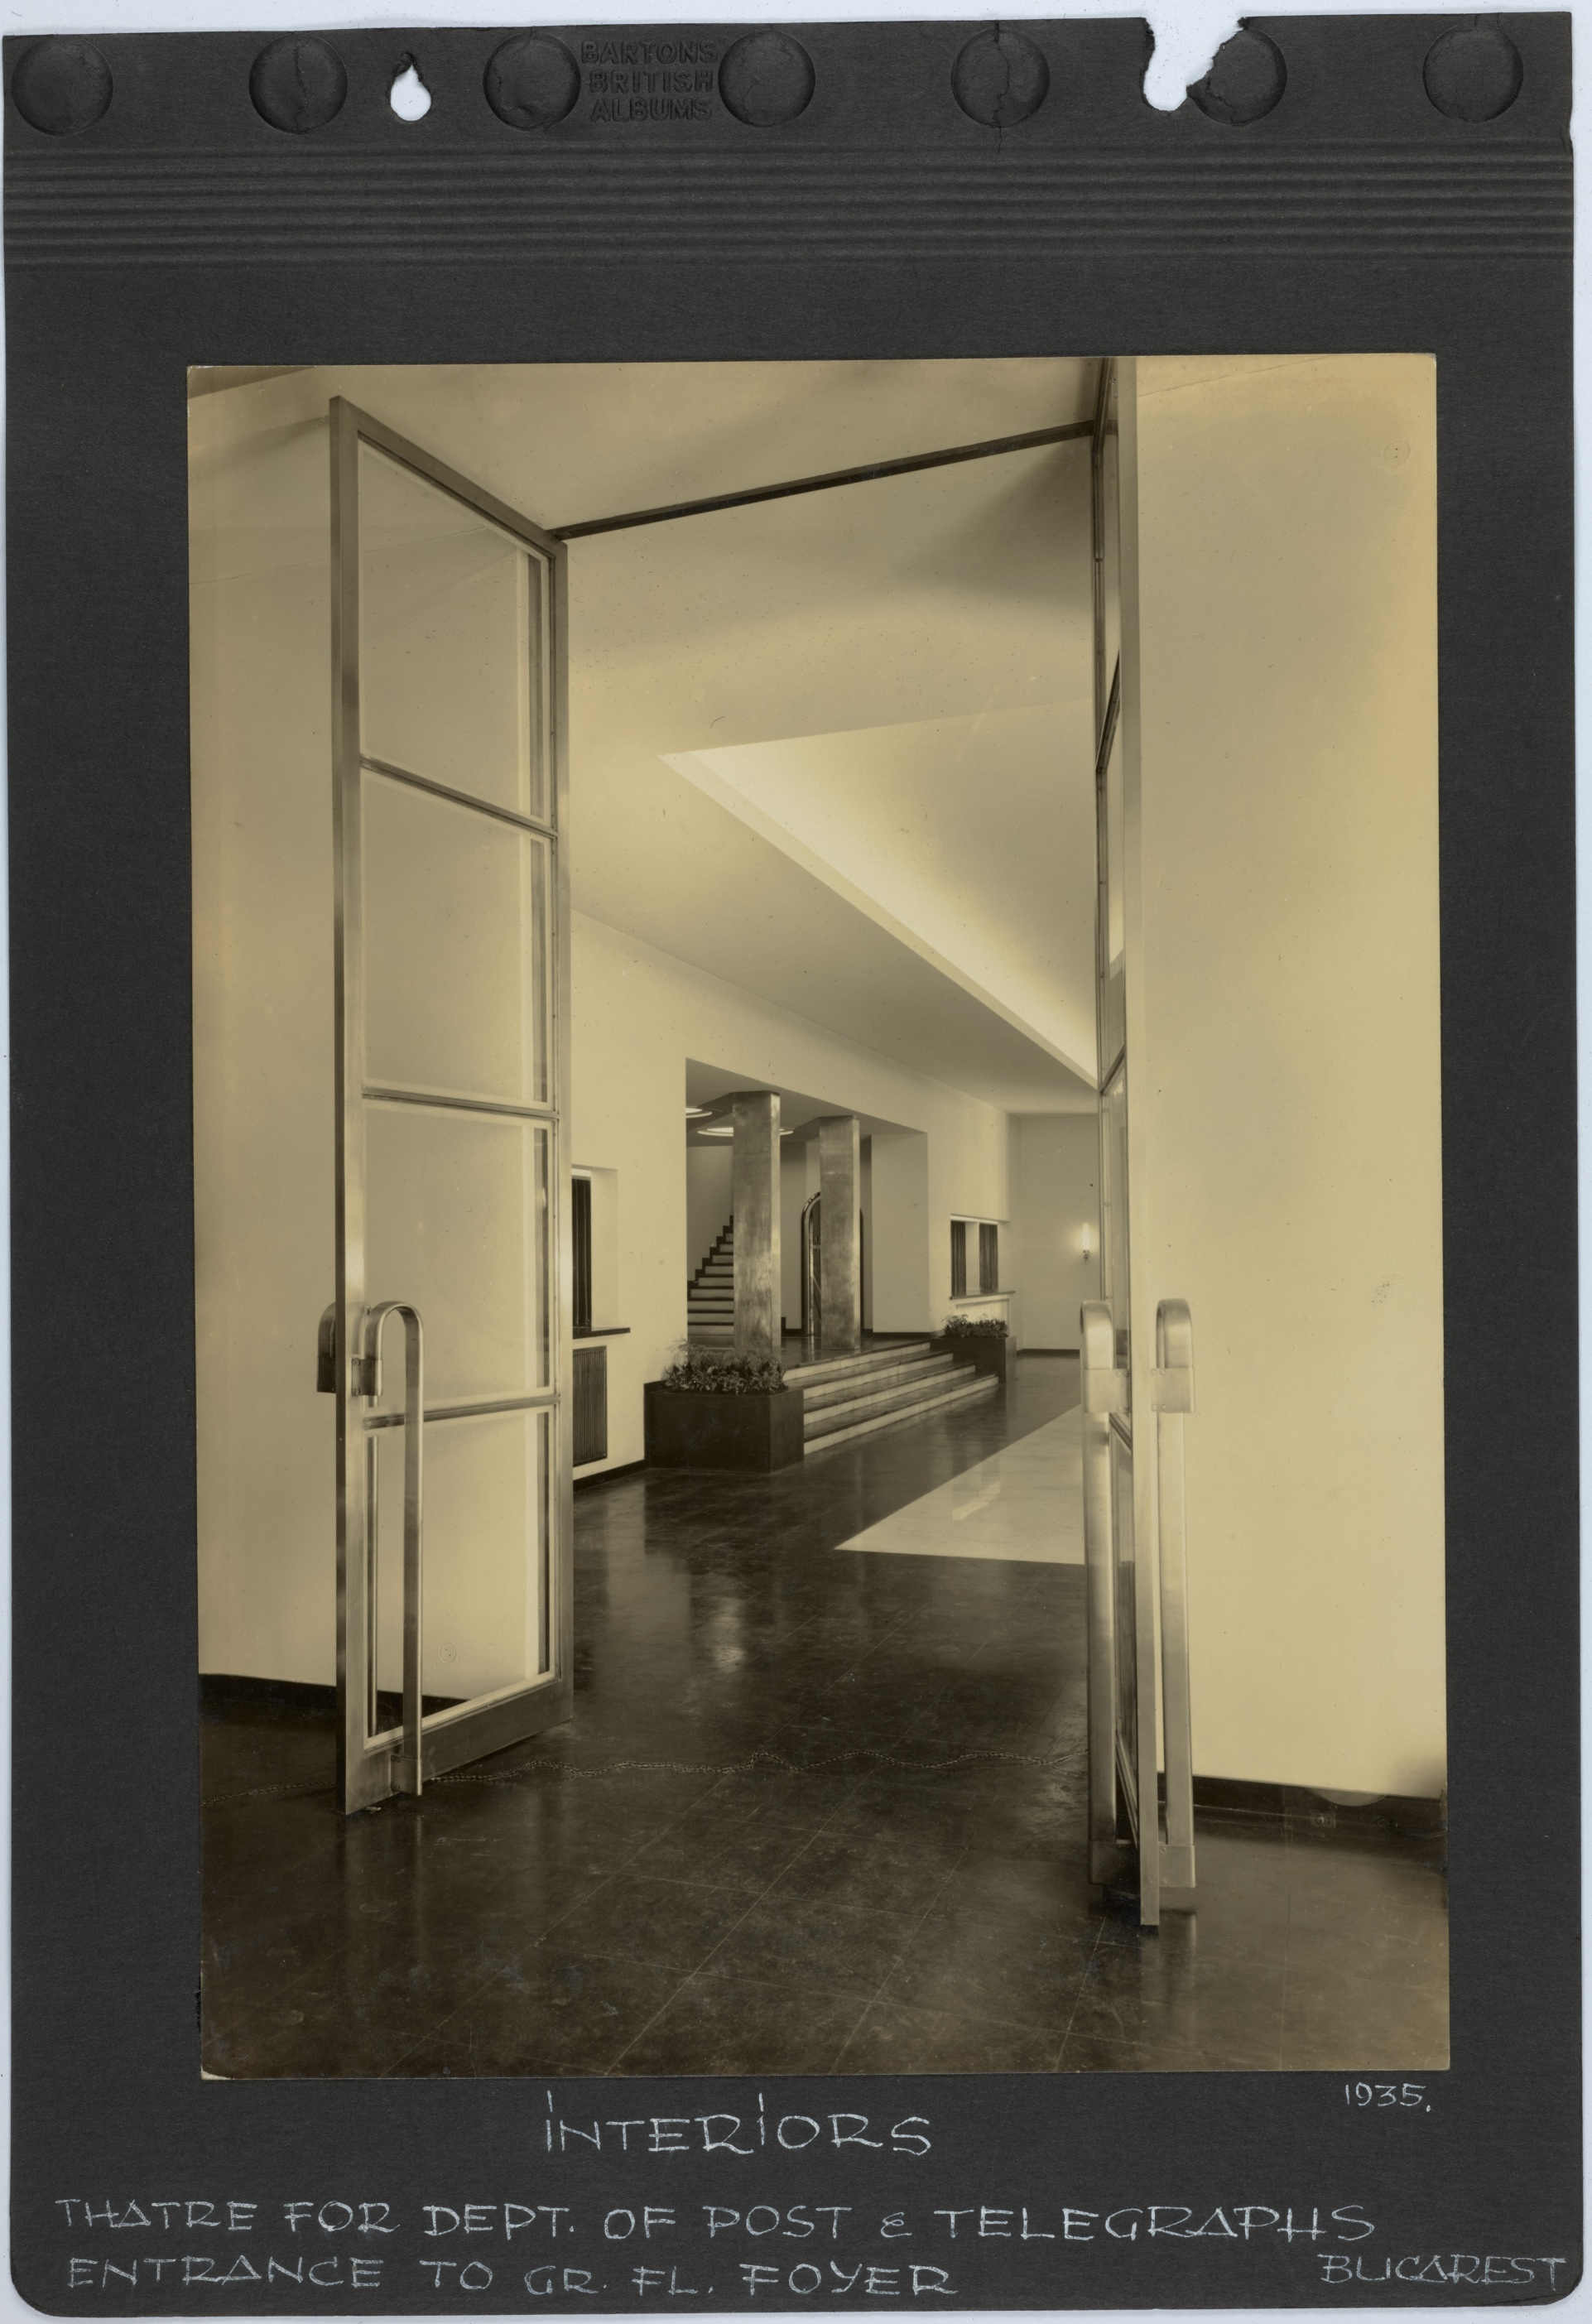 Theatre for Dept. of Post & Telegraphs, Bucarest, Entrance to gr. fl. foyer, 1935